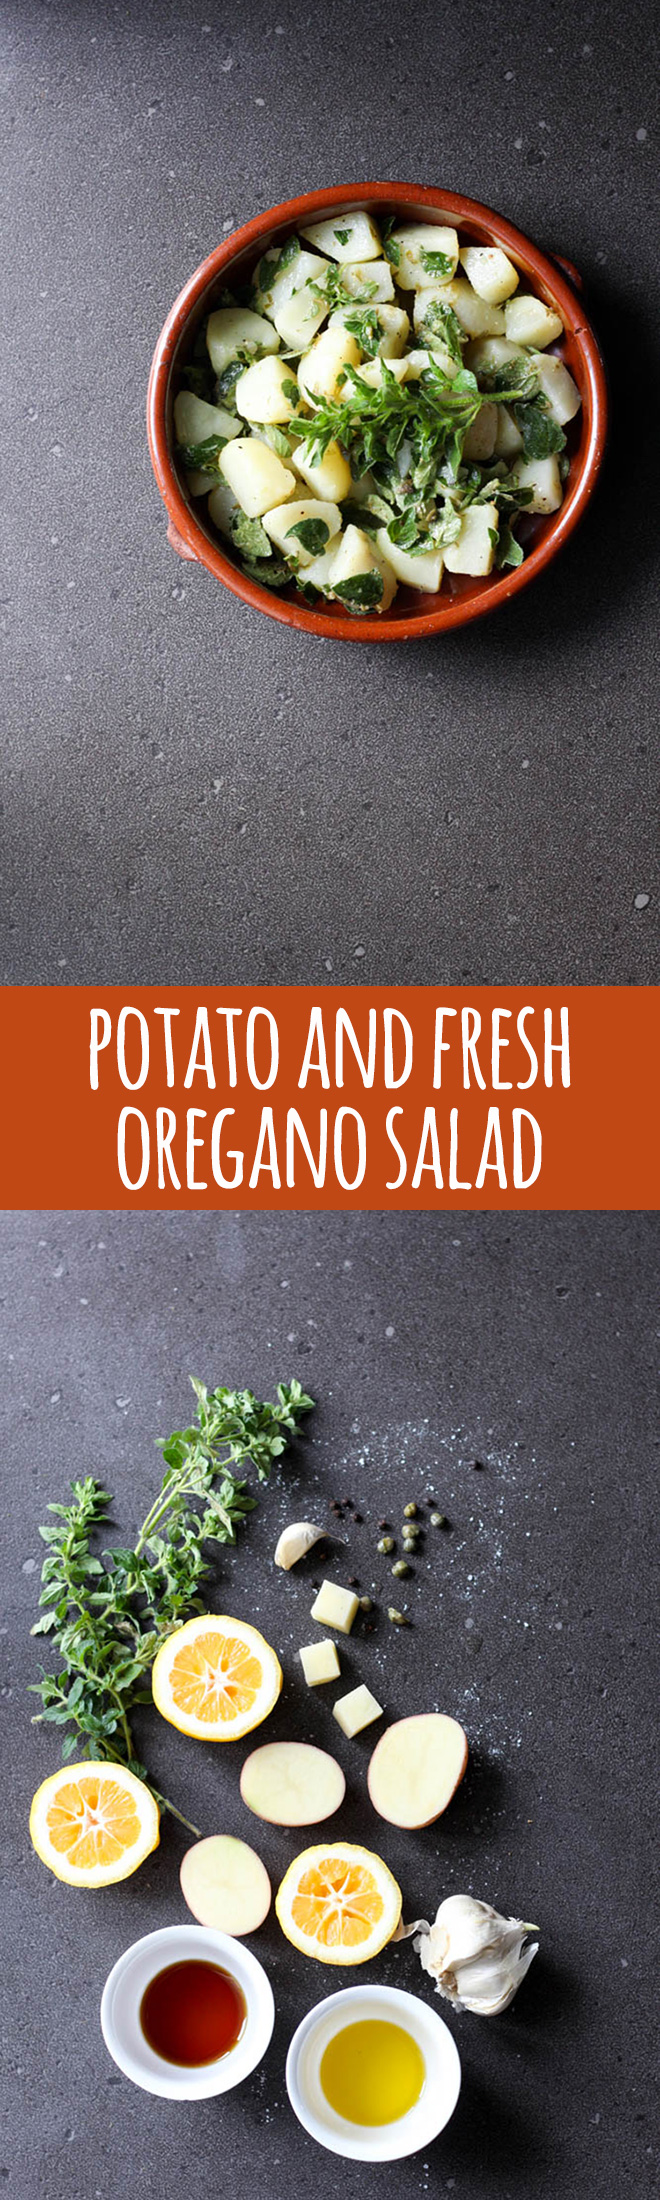 This is a much lightened up version of potato salad, with a sharp caper dressing which is balanced out by the savoury flavours of fresh oregano.